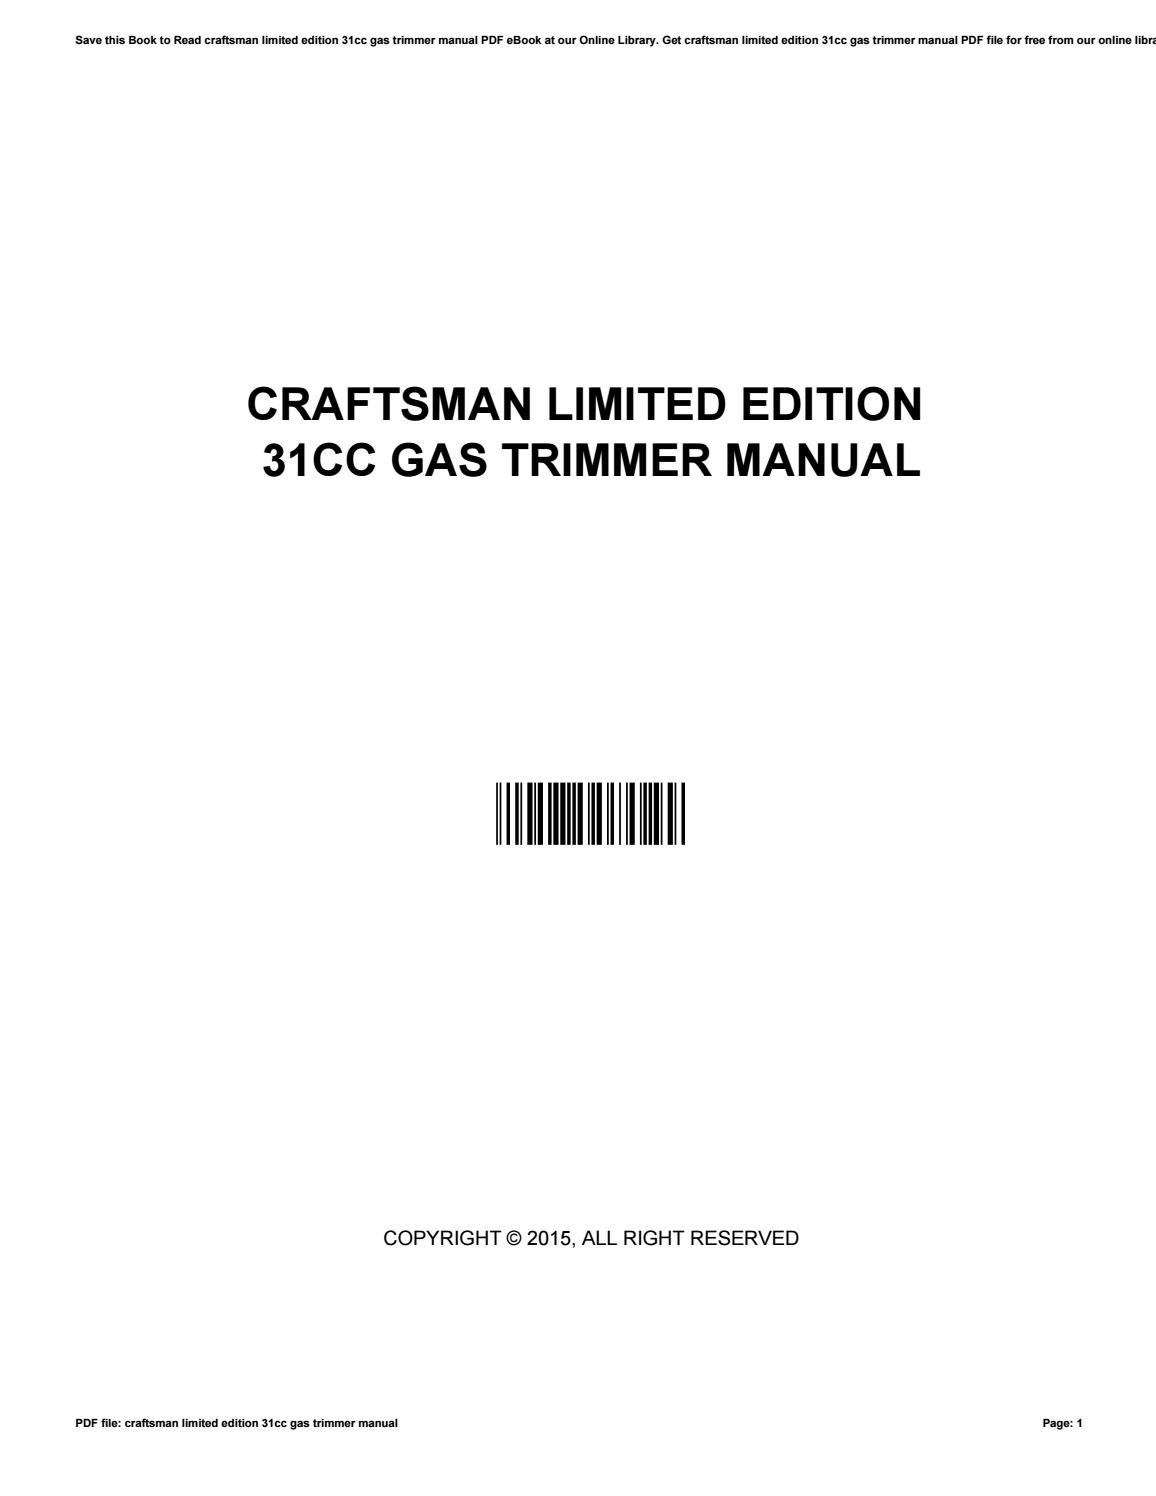 craftsman limited edition 31cc gas trimmer manual